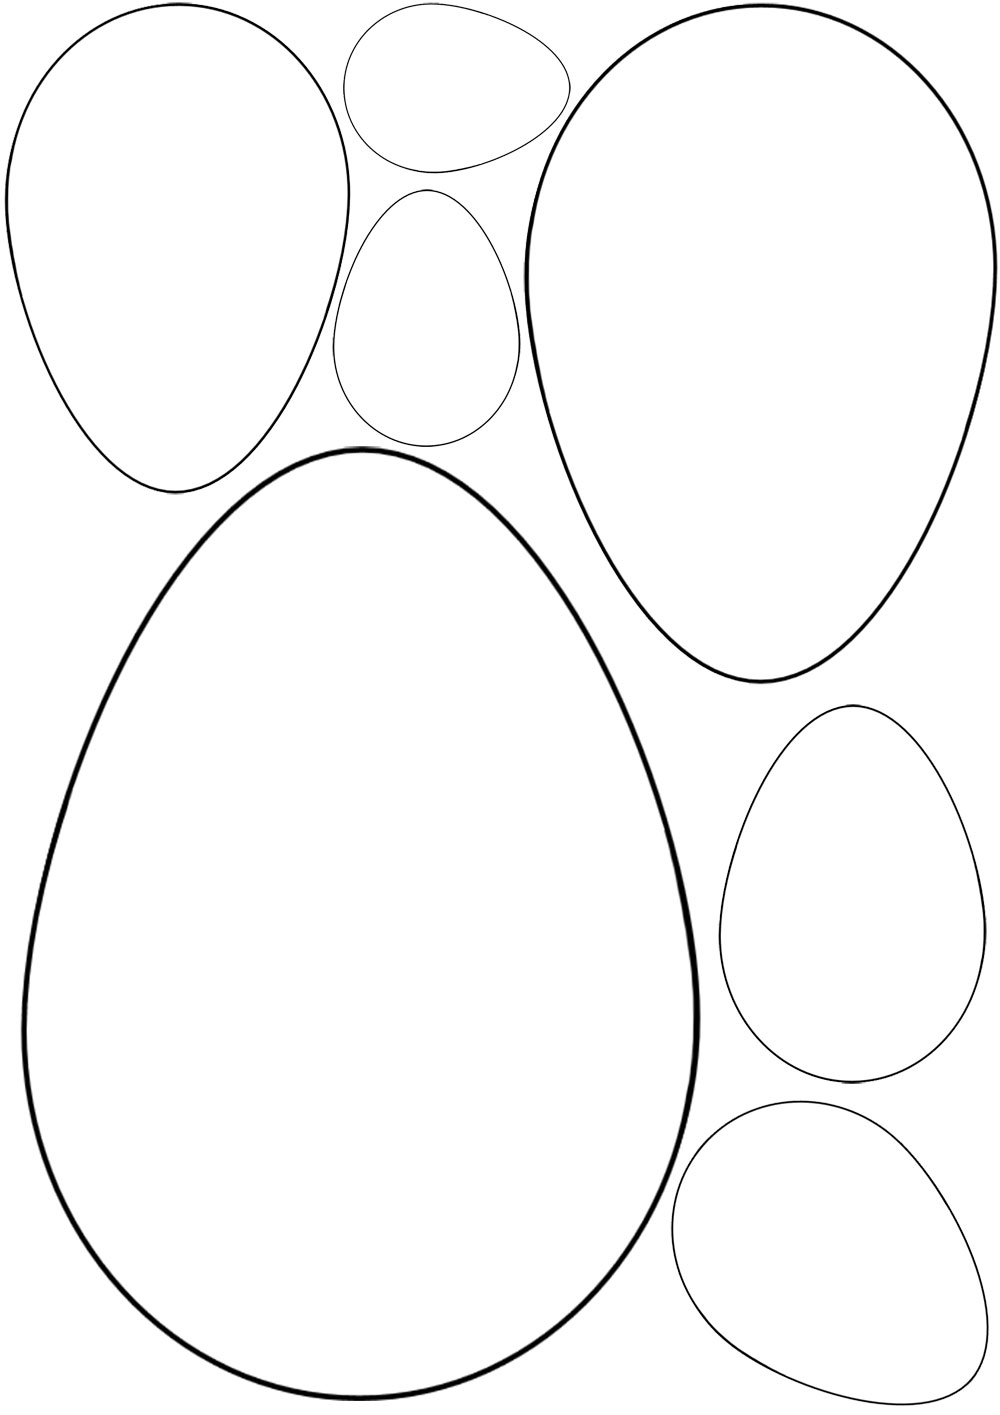 1000x1415 Easter Egg Drawing Templates Hd Easter Images